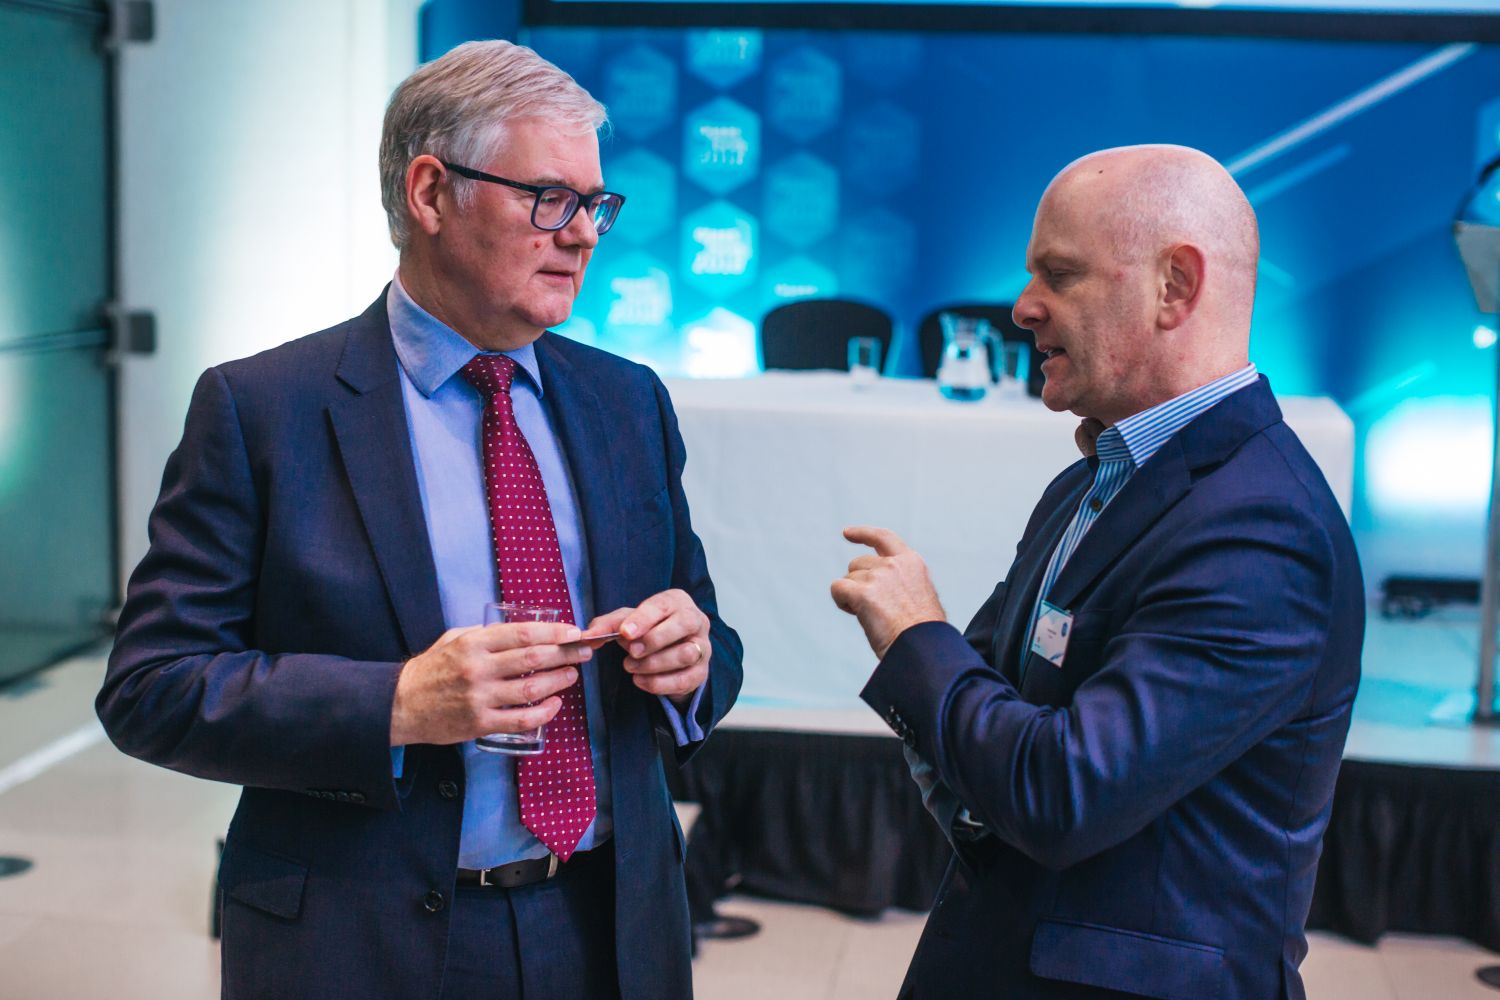 Graham Hillier of the Centre for Process Innovation alongside Encirc's Adrian Curry